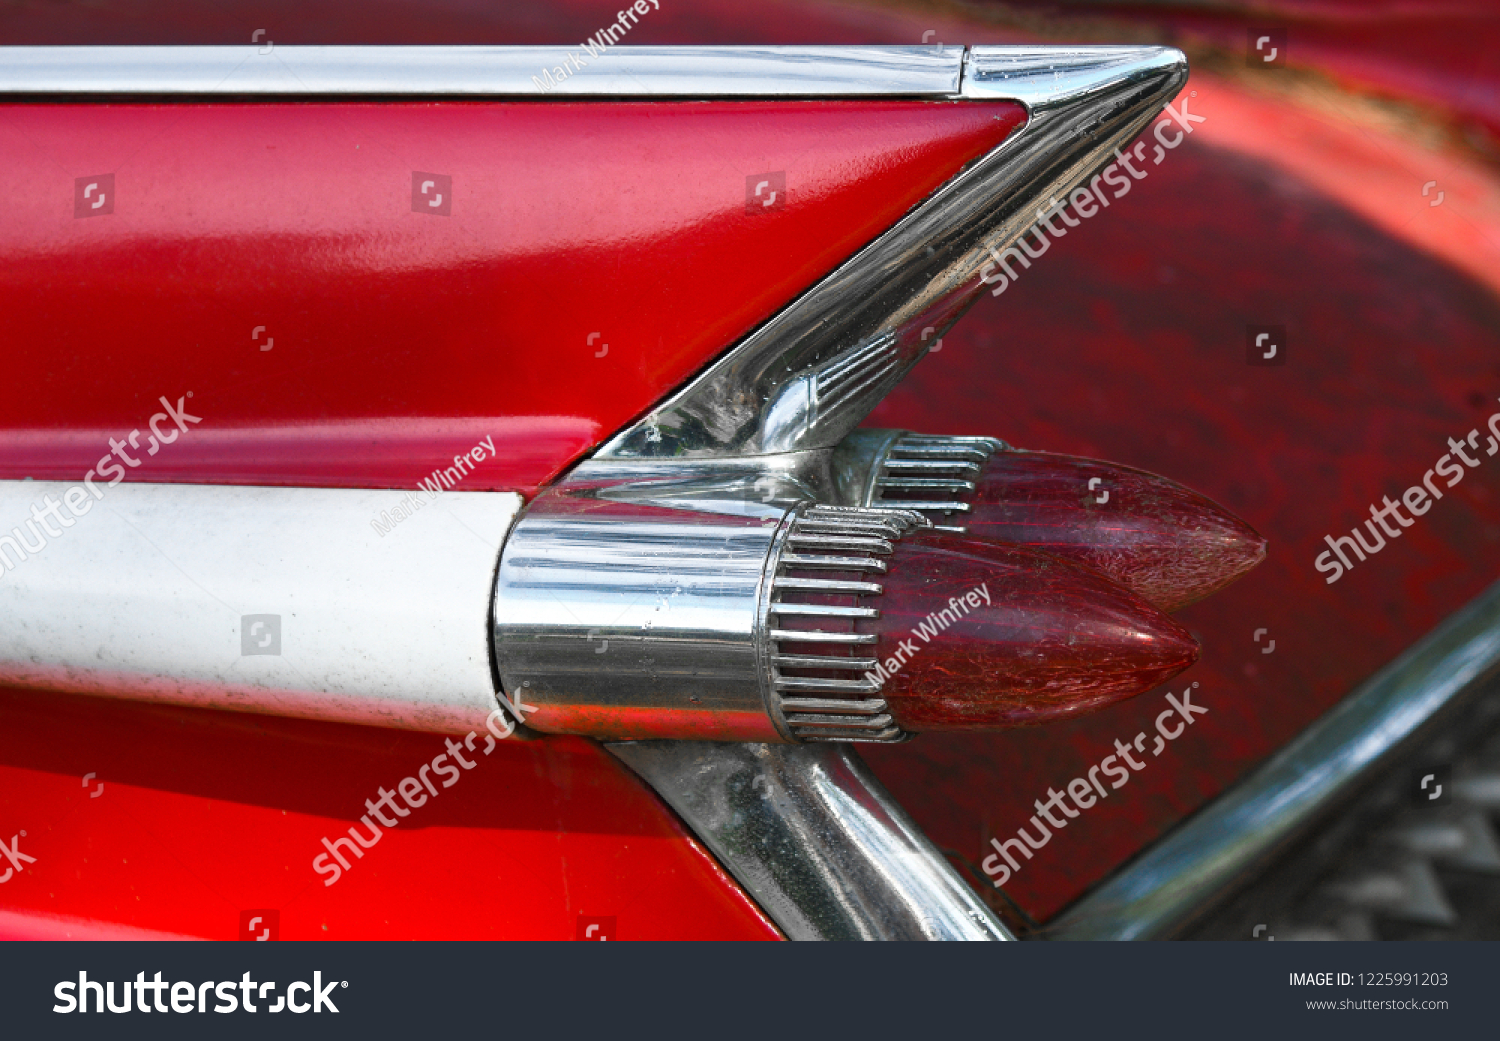 stock-photo-retro-fin-on-an-old-red-clas